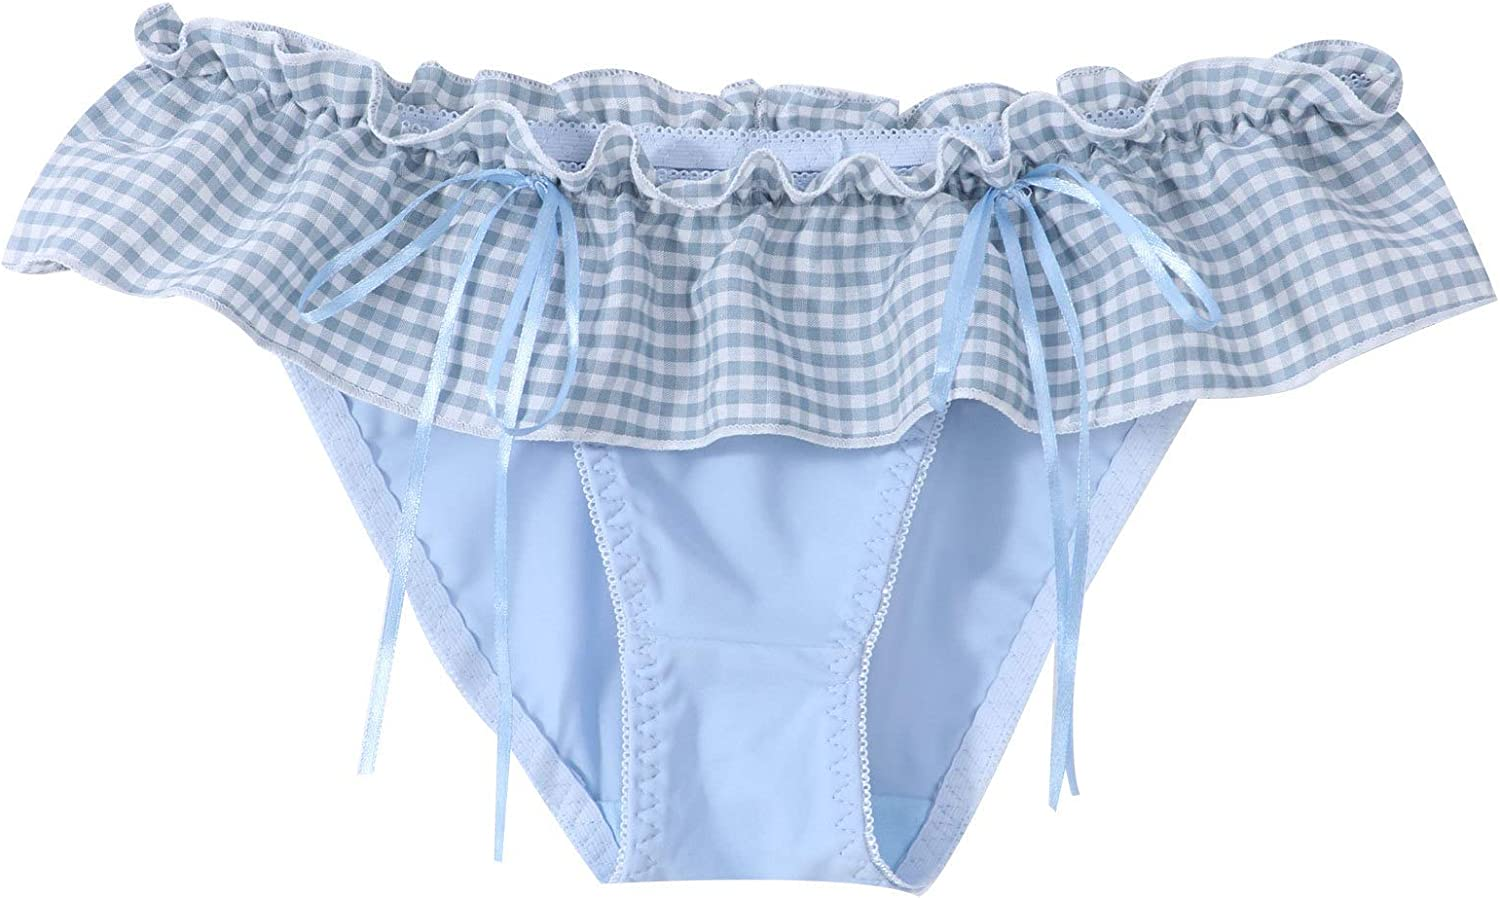 TTAO Men's Ruffled Popular brand Sissy Pouch Lac Panties Satin Lingerie Gifts Floral